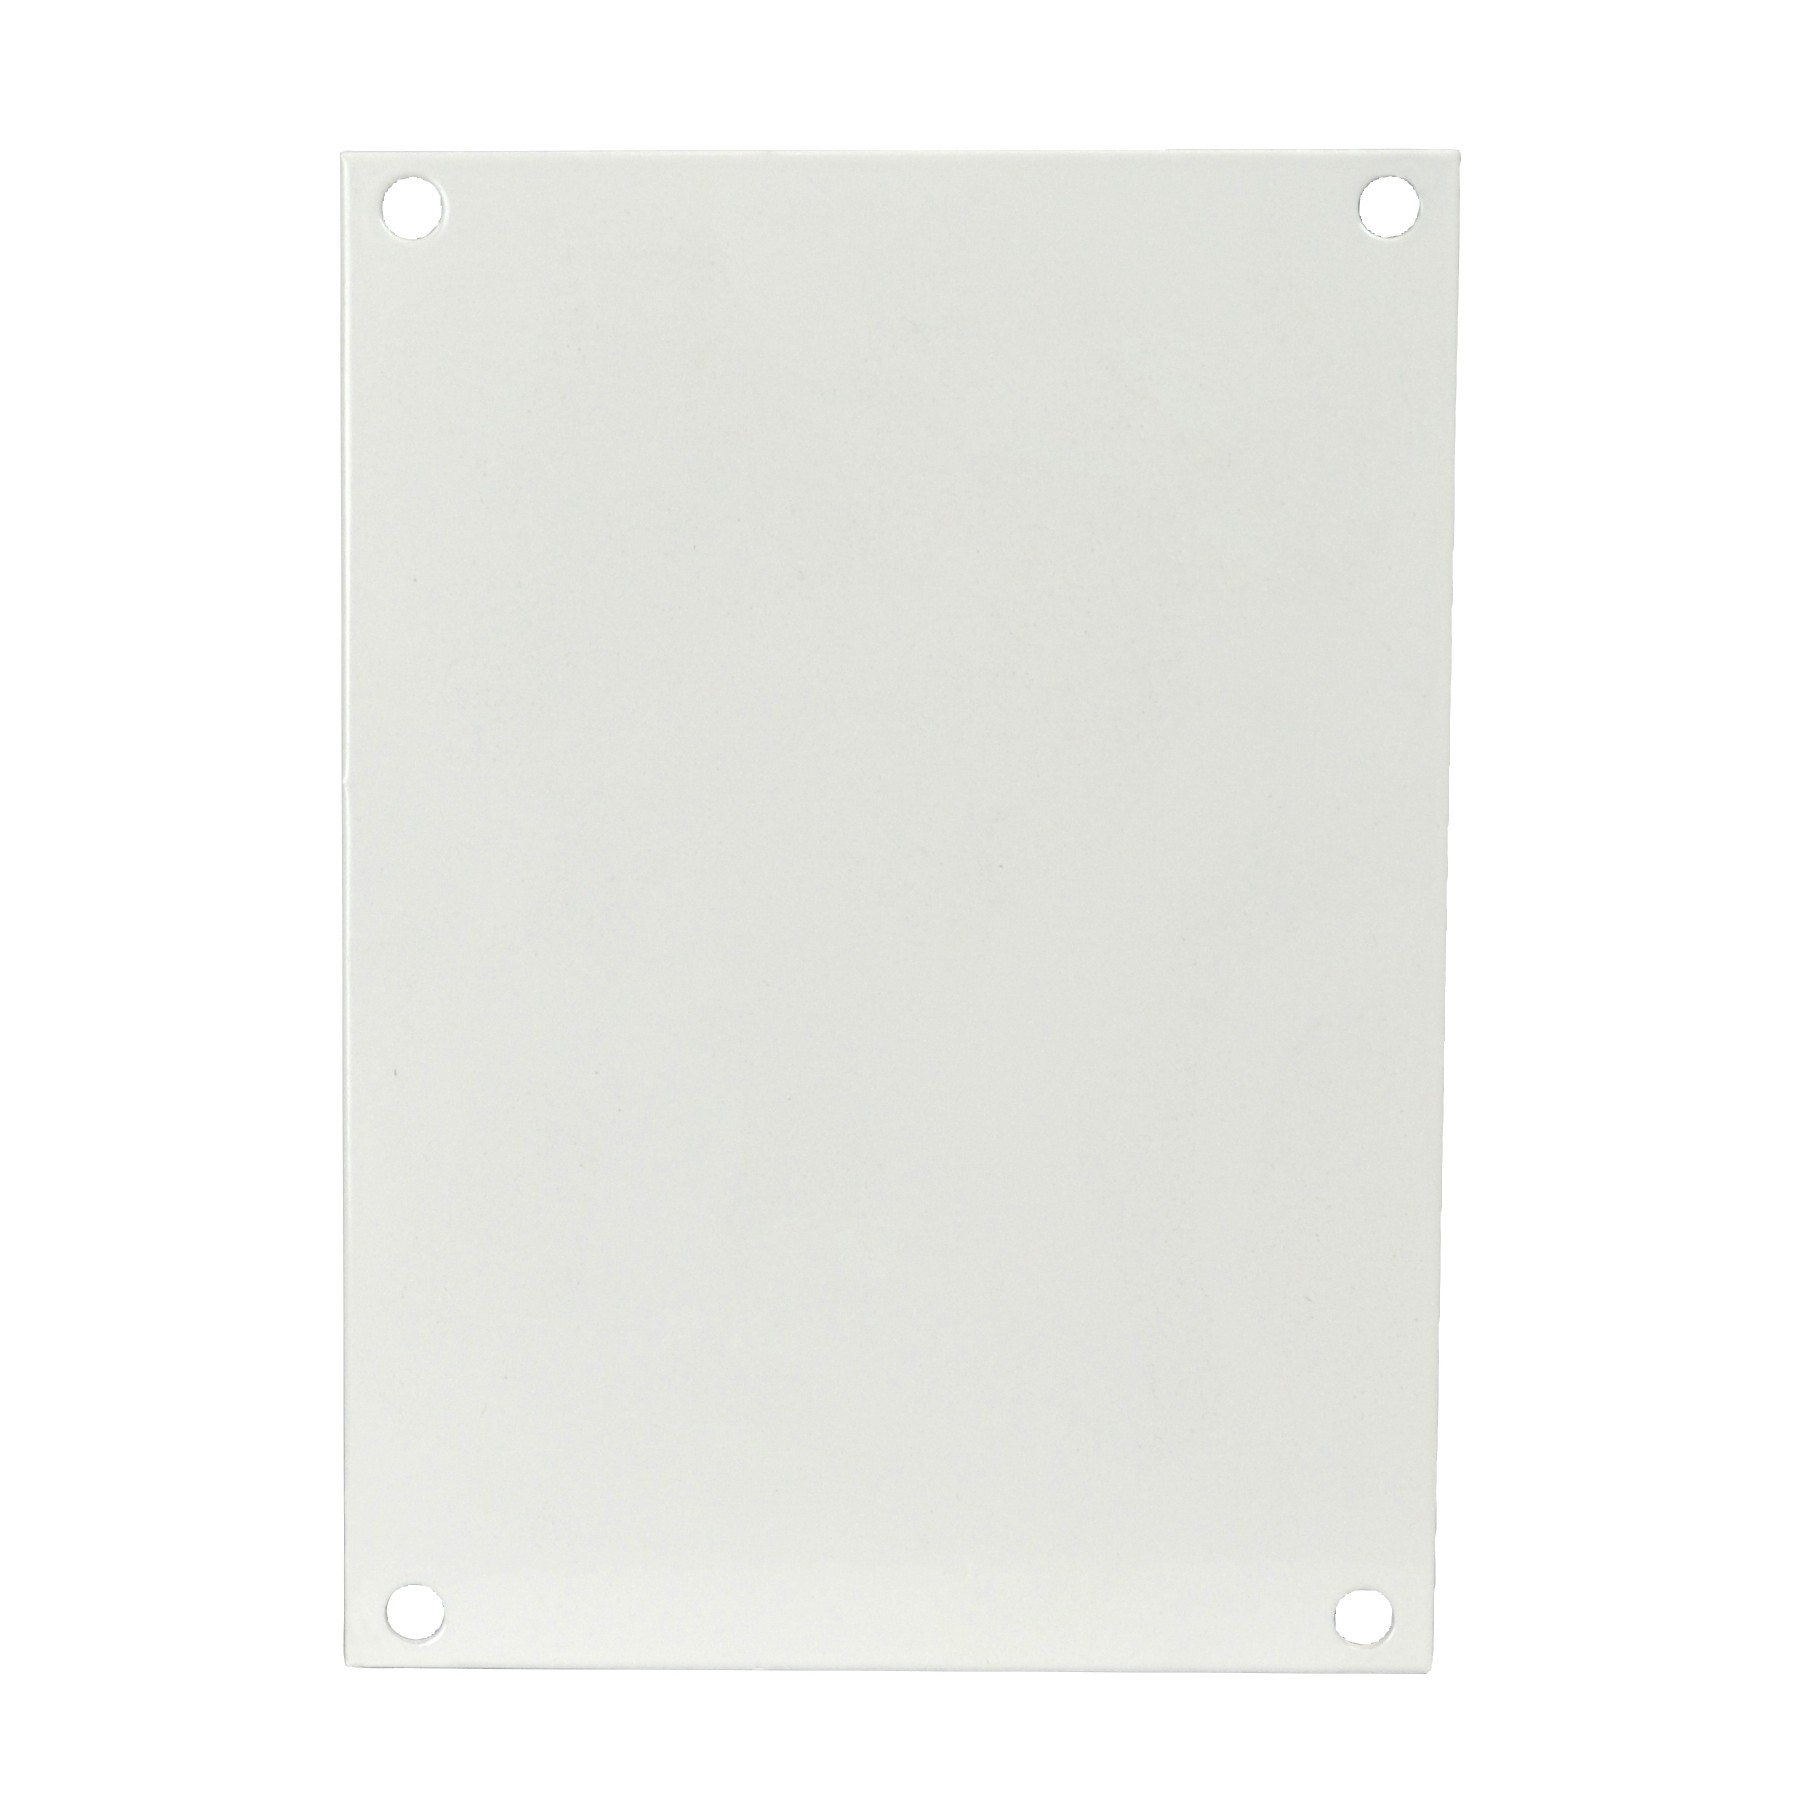 P108 - Carbon Steel Enclosure Back Panel Kit